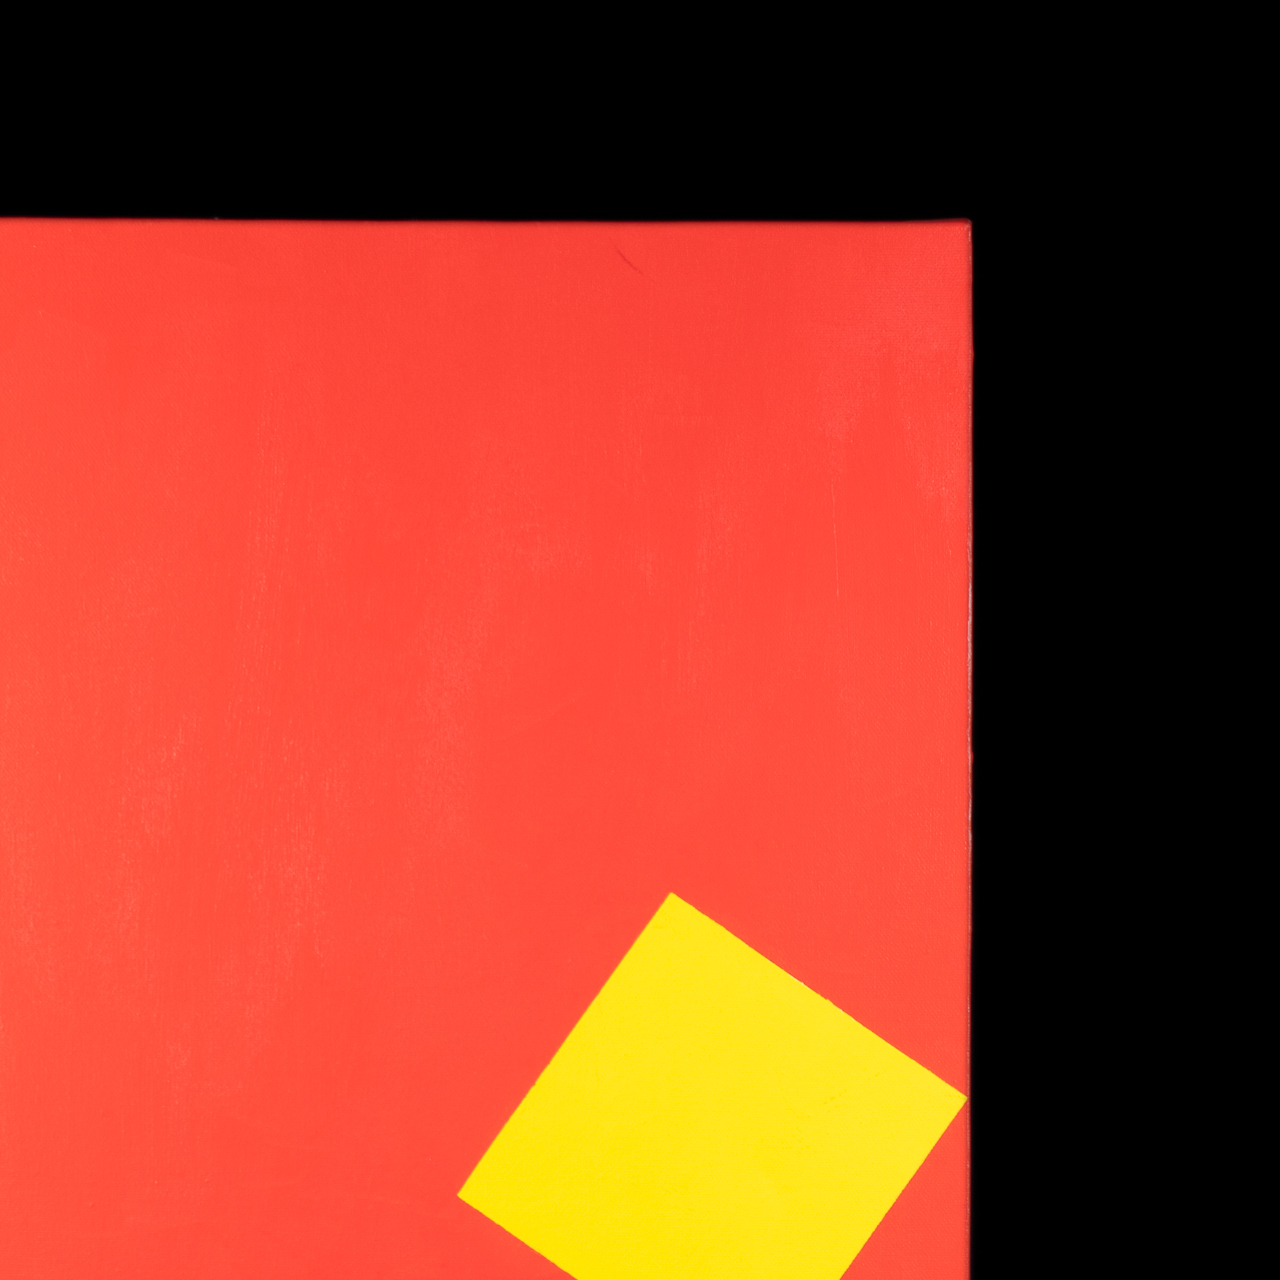 Pair of Contemporary Abstract Paintings Jacob Lloyds - Image 5 of 13